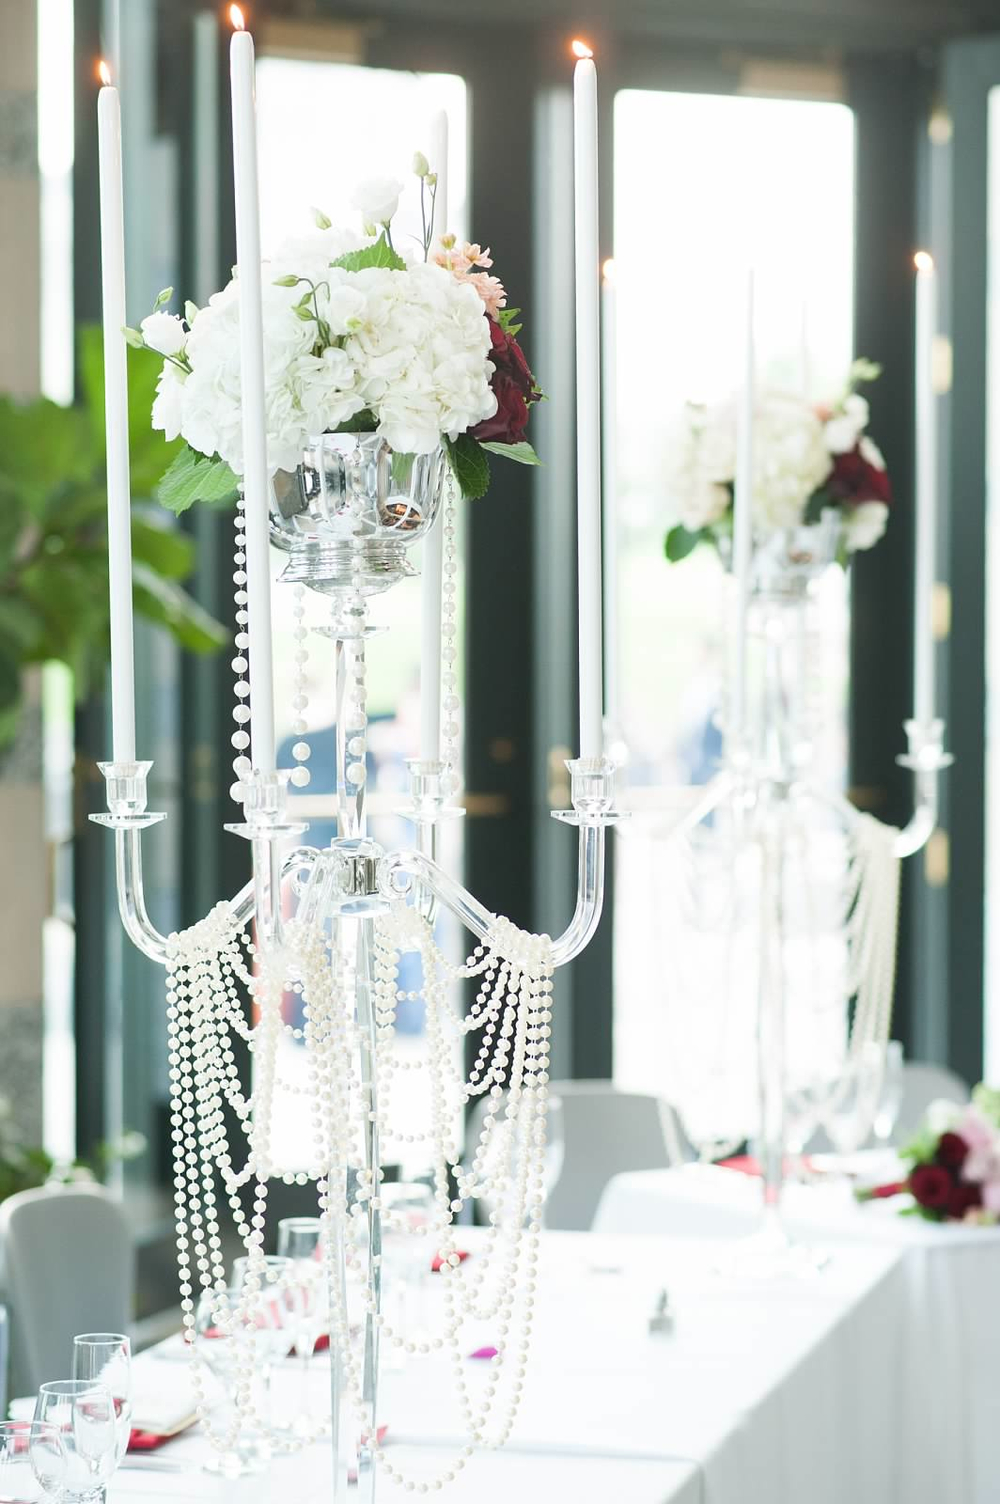 Head table pearl draped crystal candelabra centerpieces with white flowers.jpg